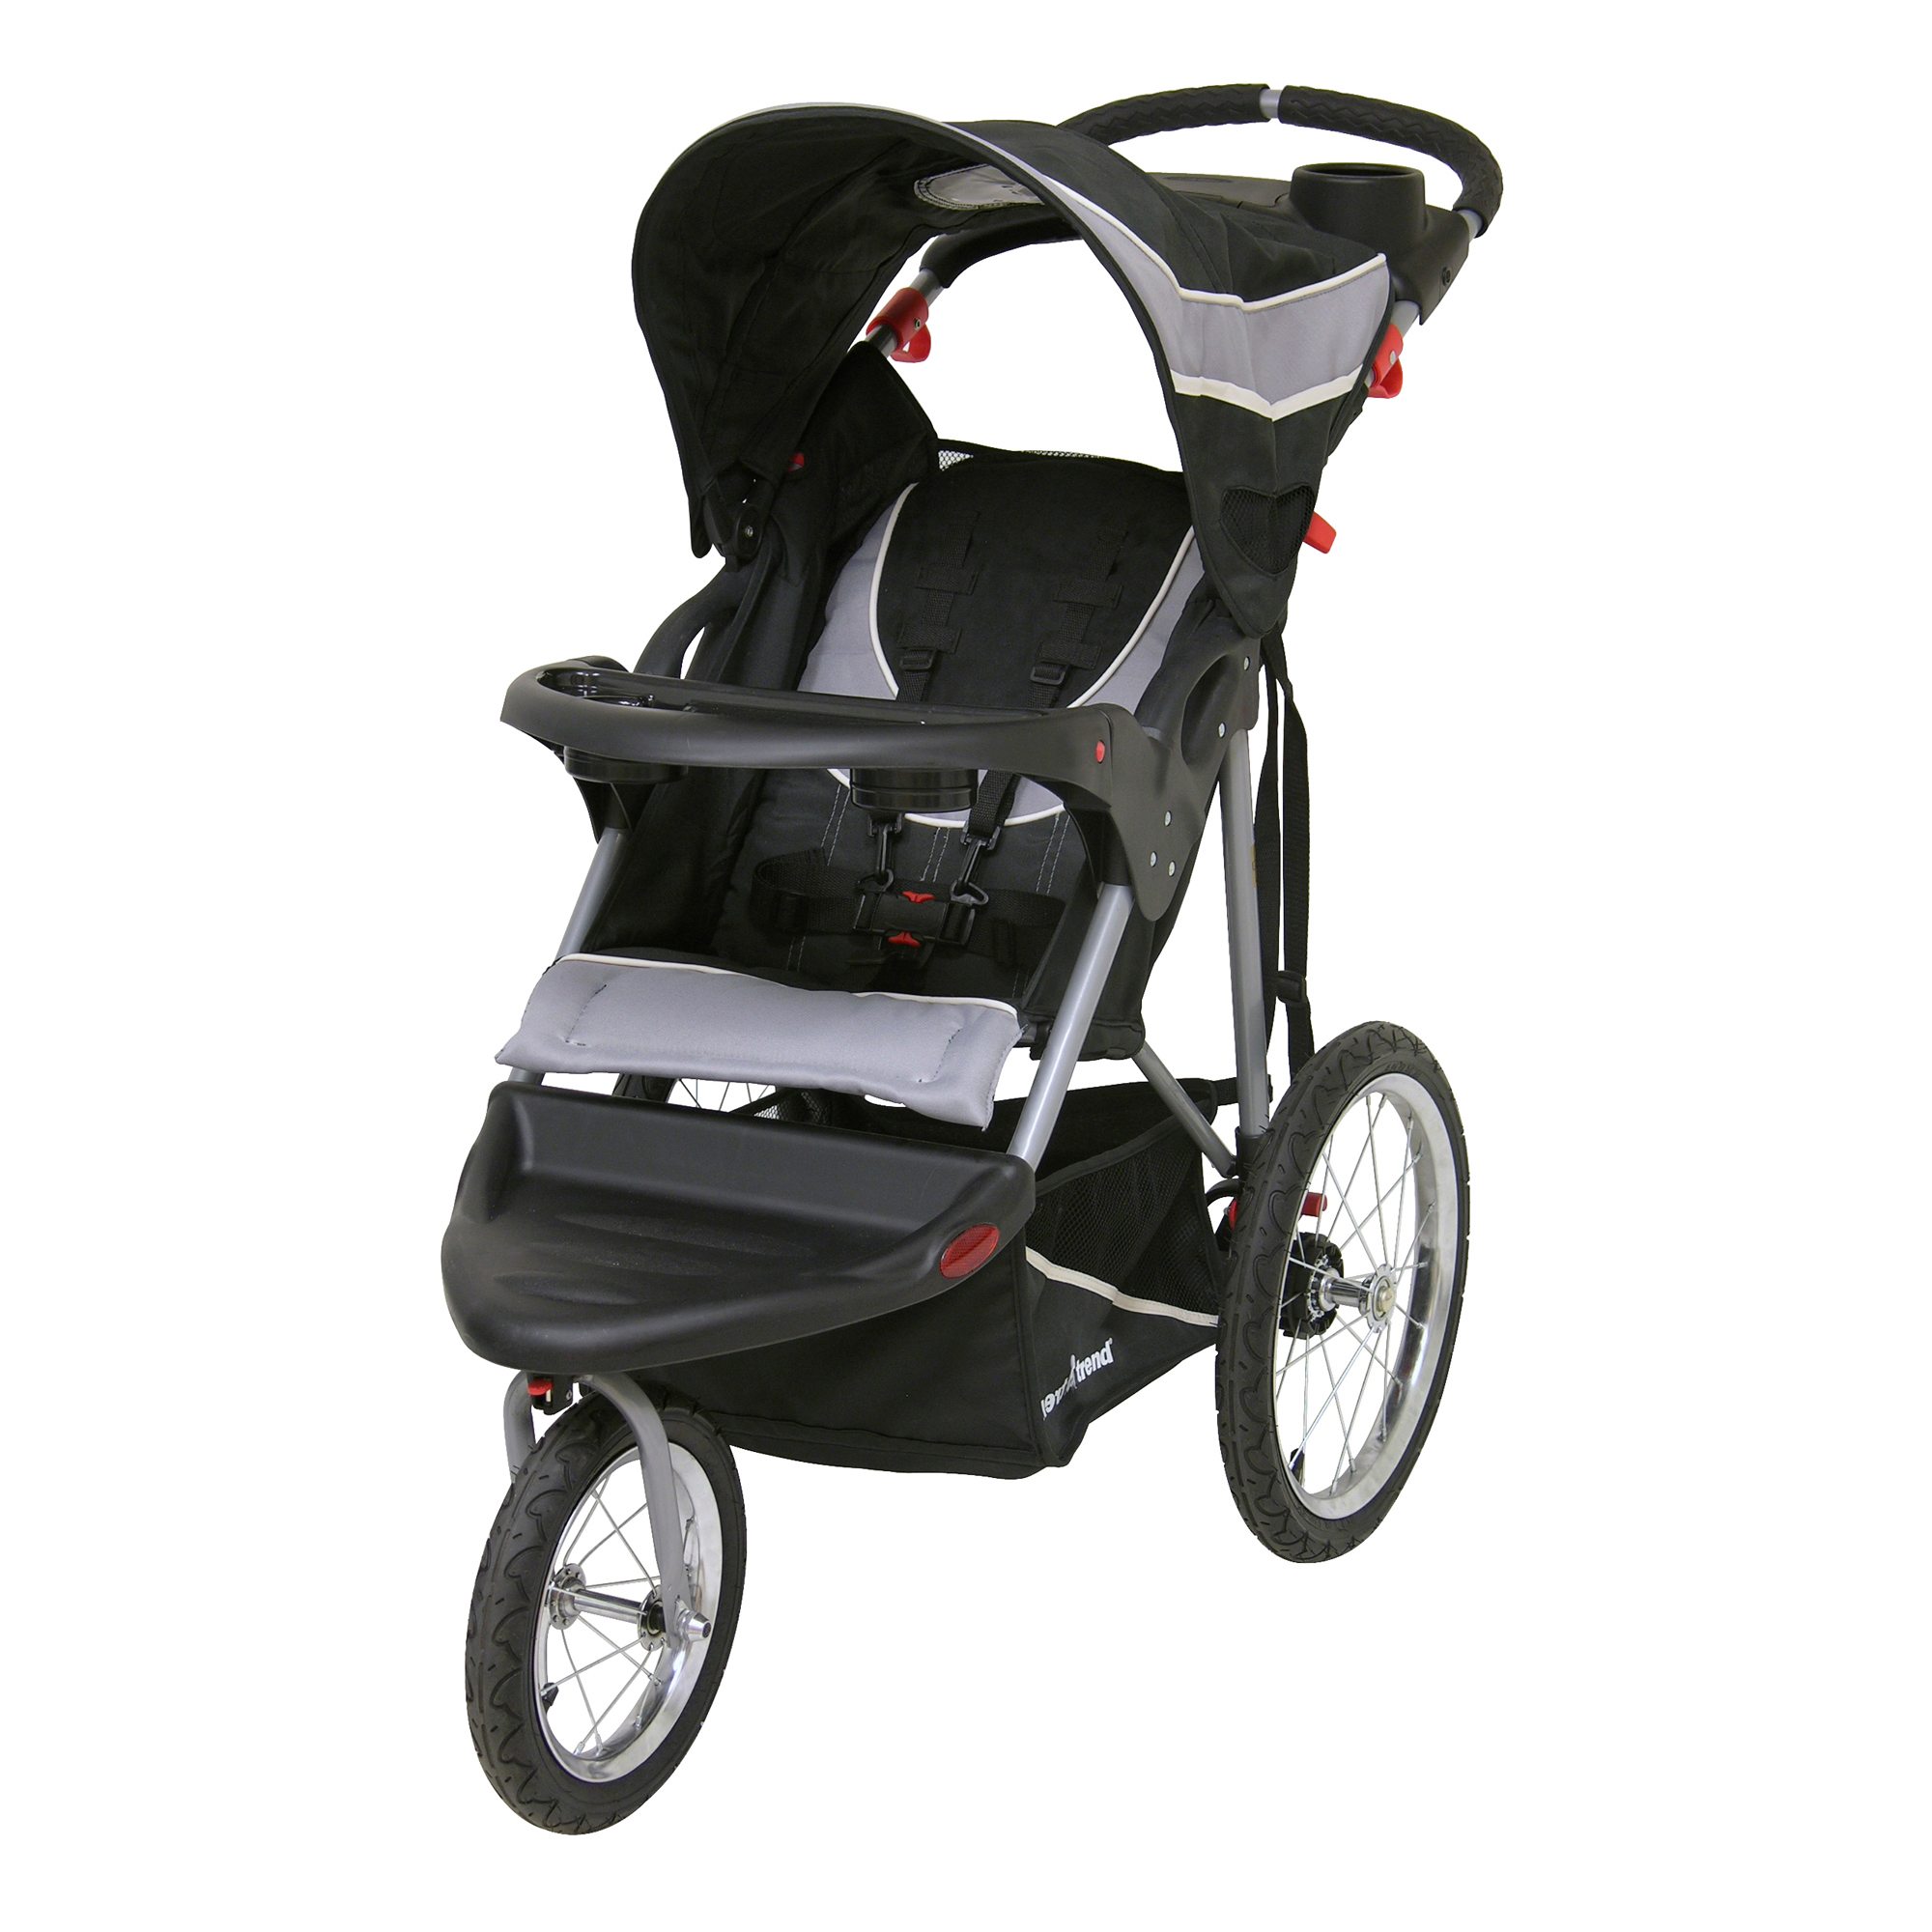 19+ Baby trend jogging stroller with bassinet info